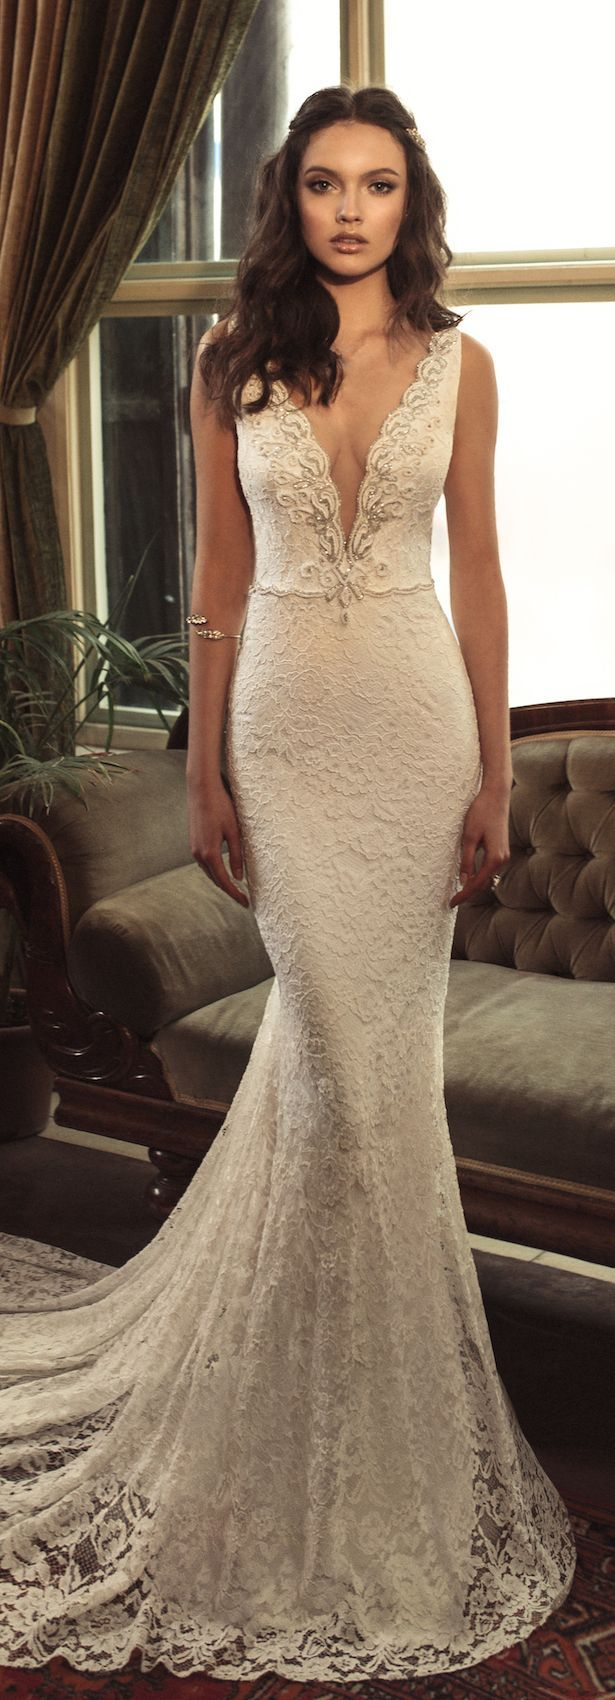 Fitted wedding dresses pictures